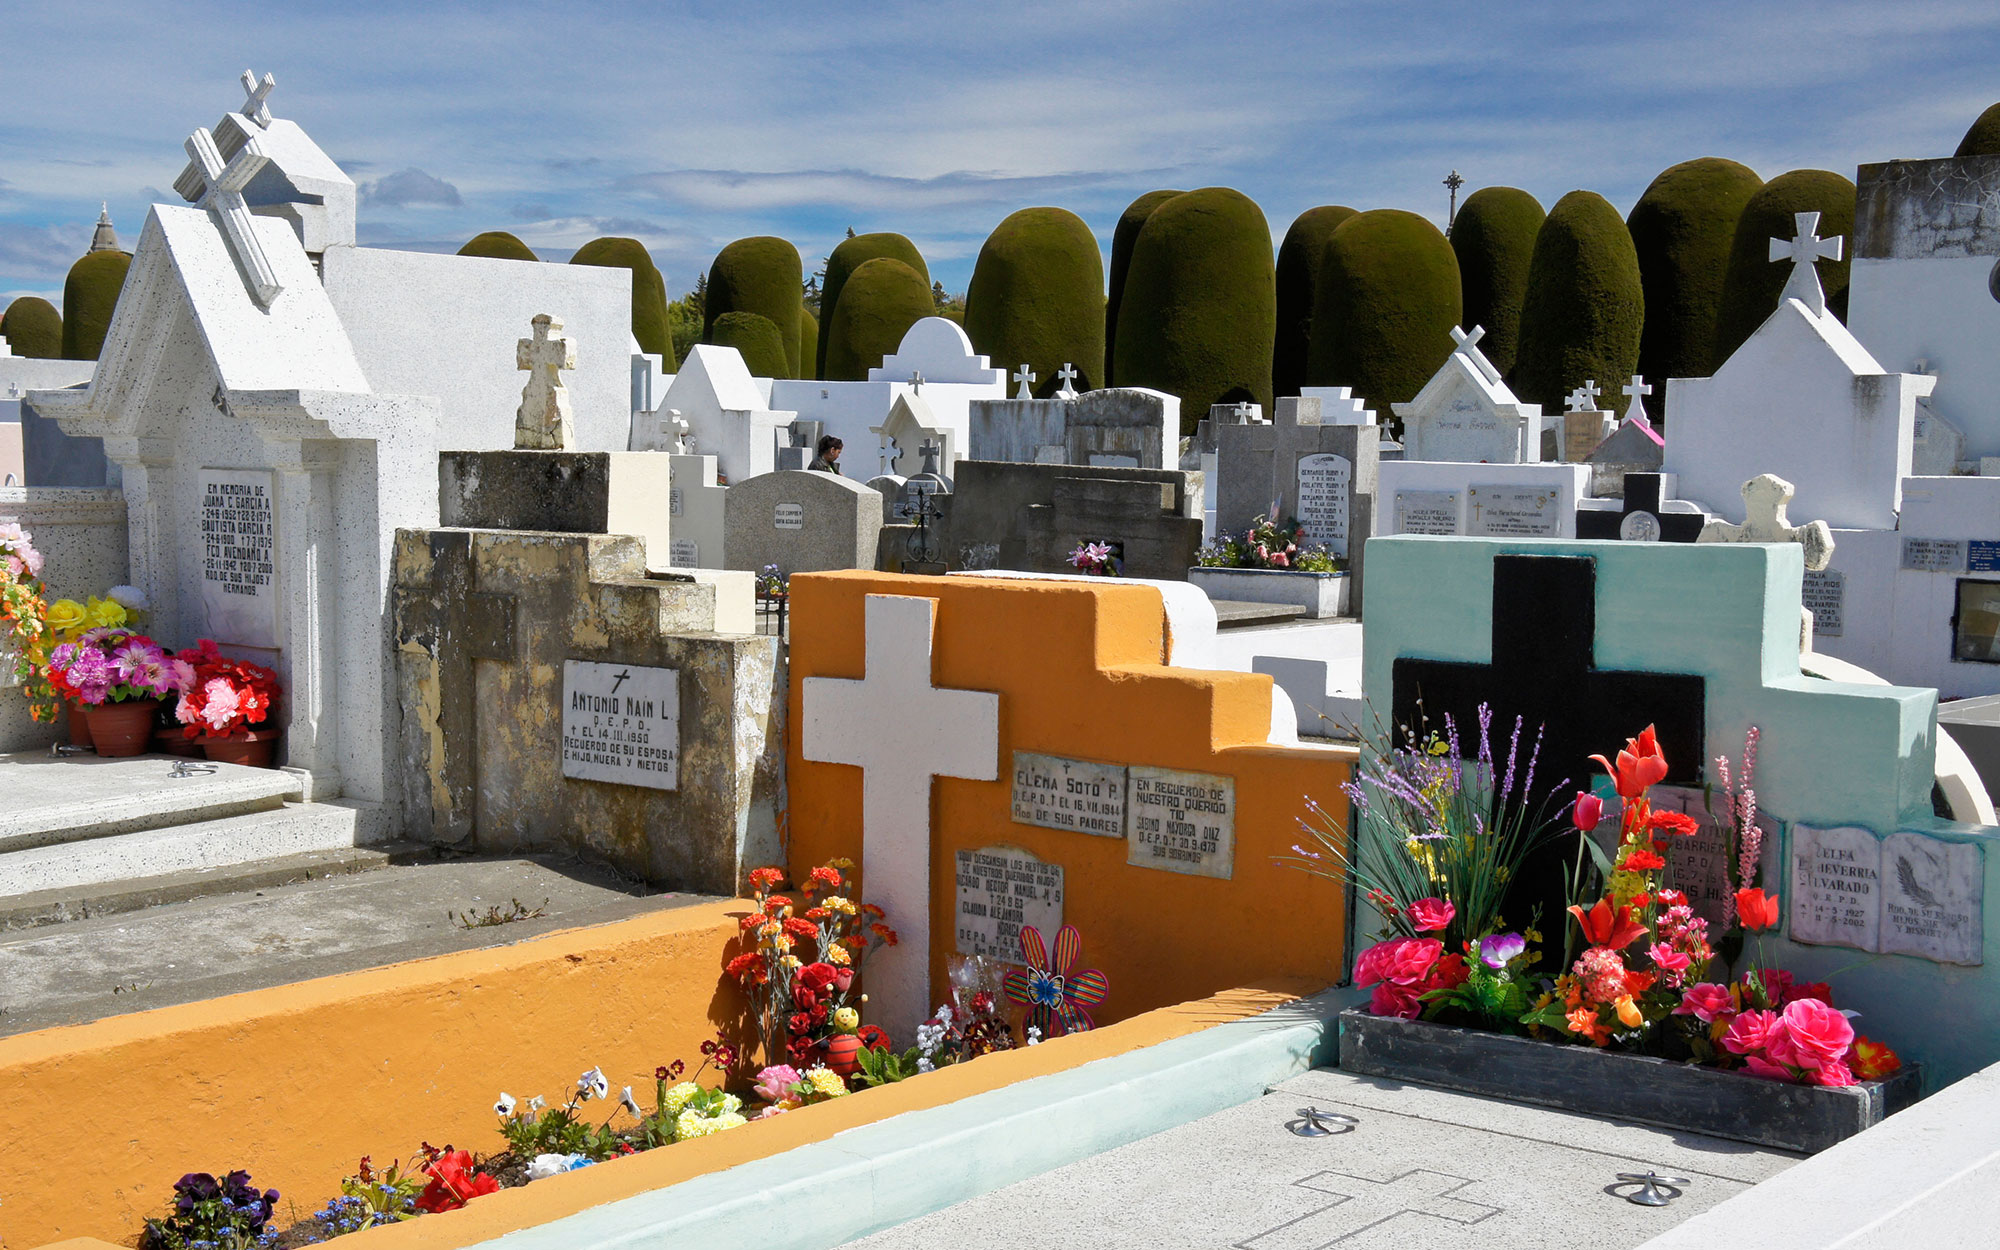 World's Most Beautiful Cemeteries: Punta Arenas Cemetery, Chile